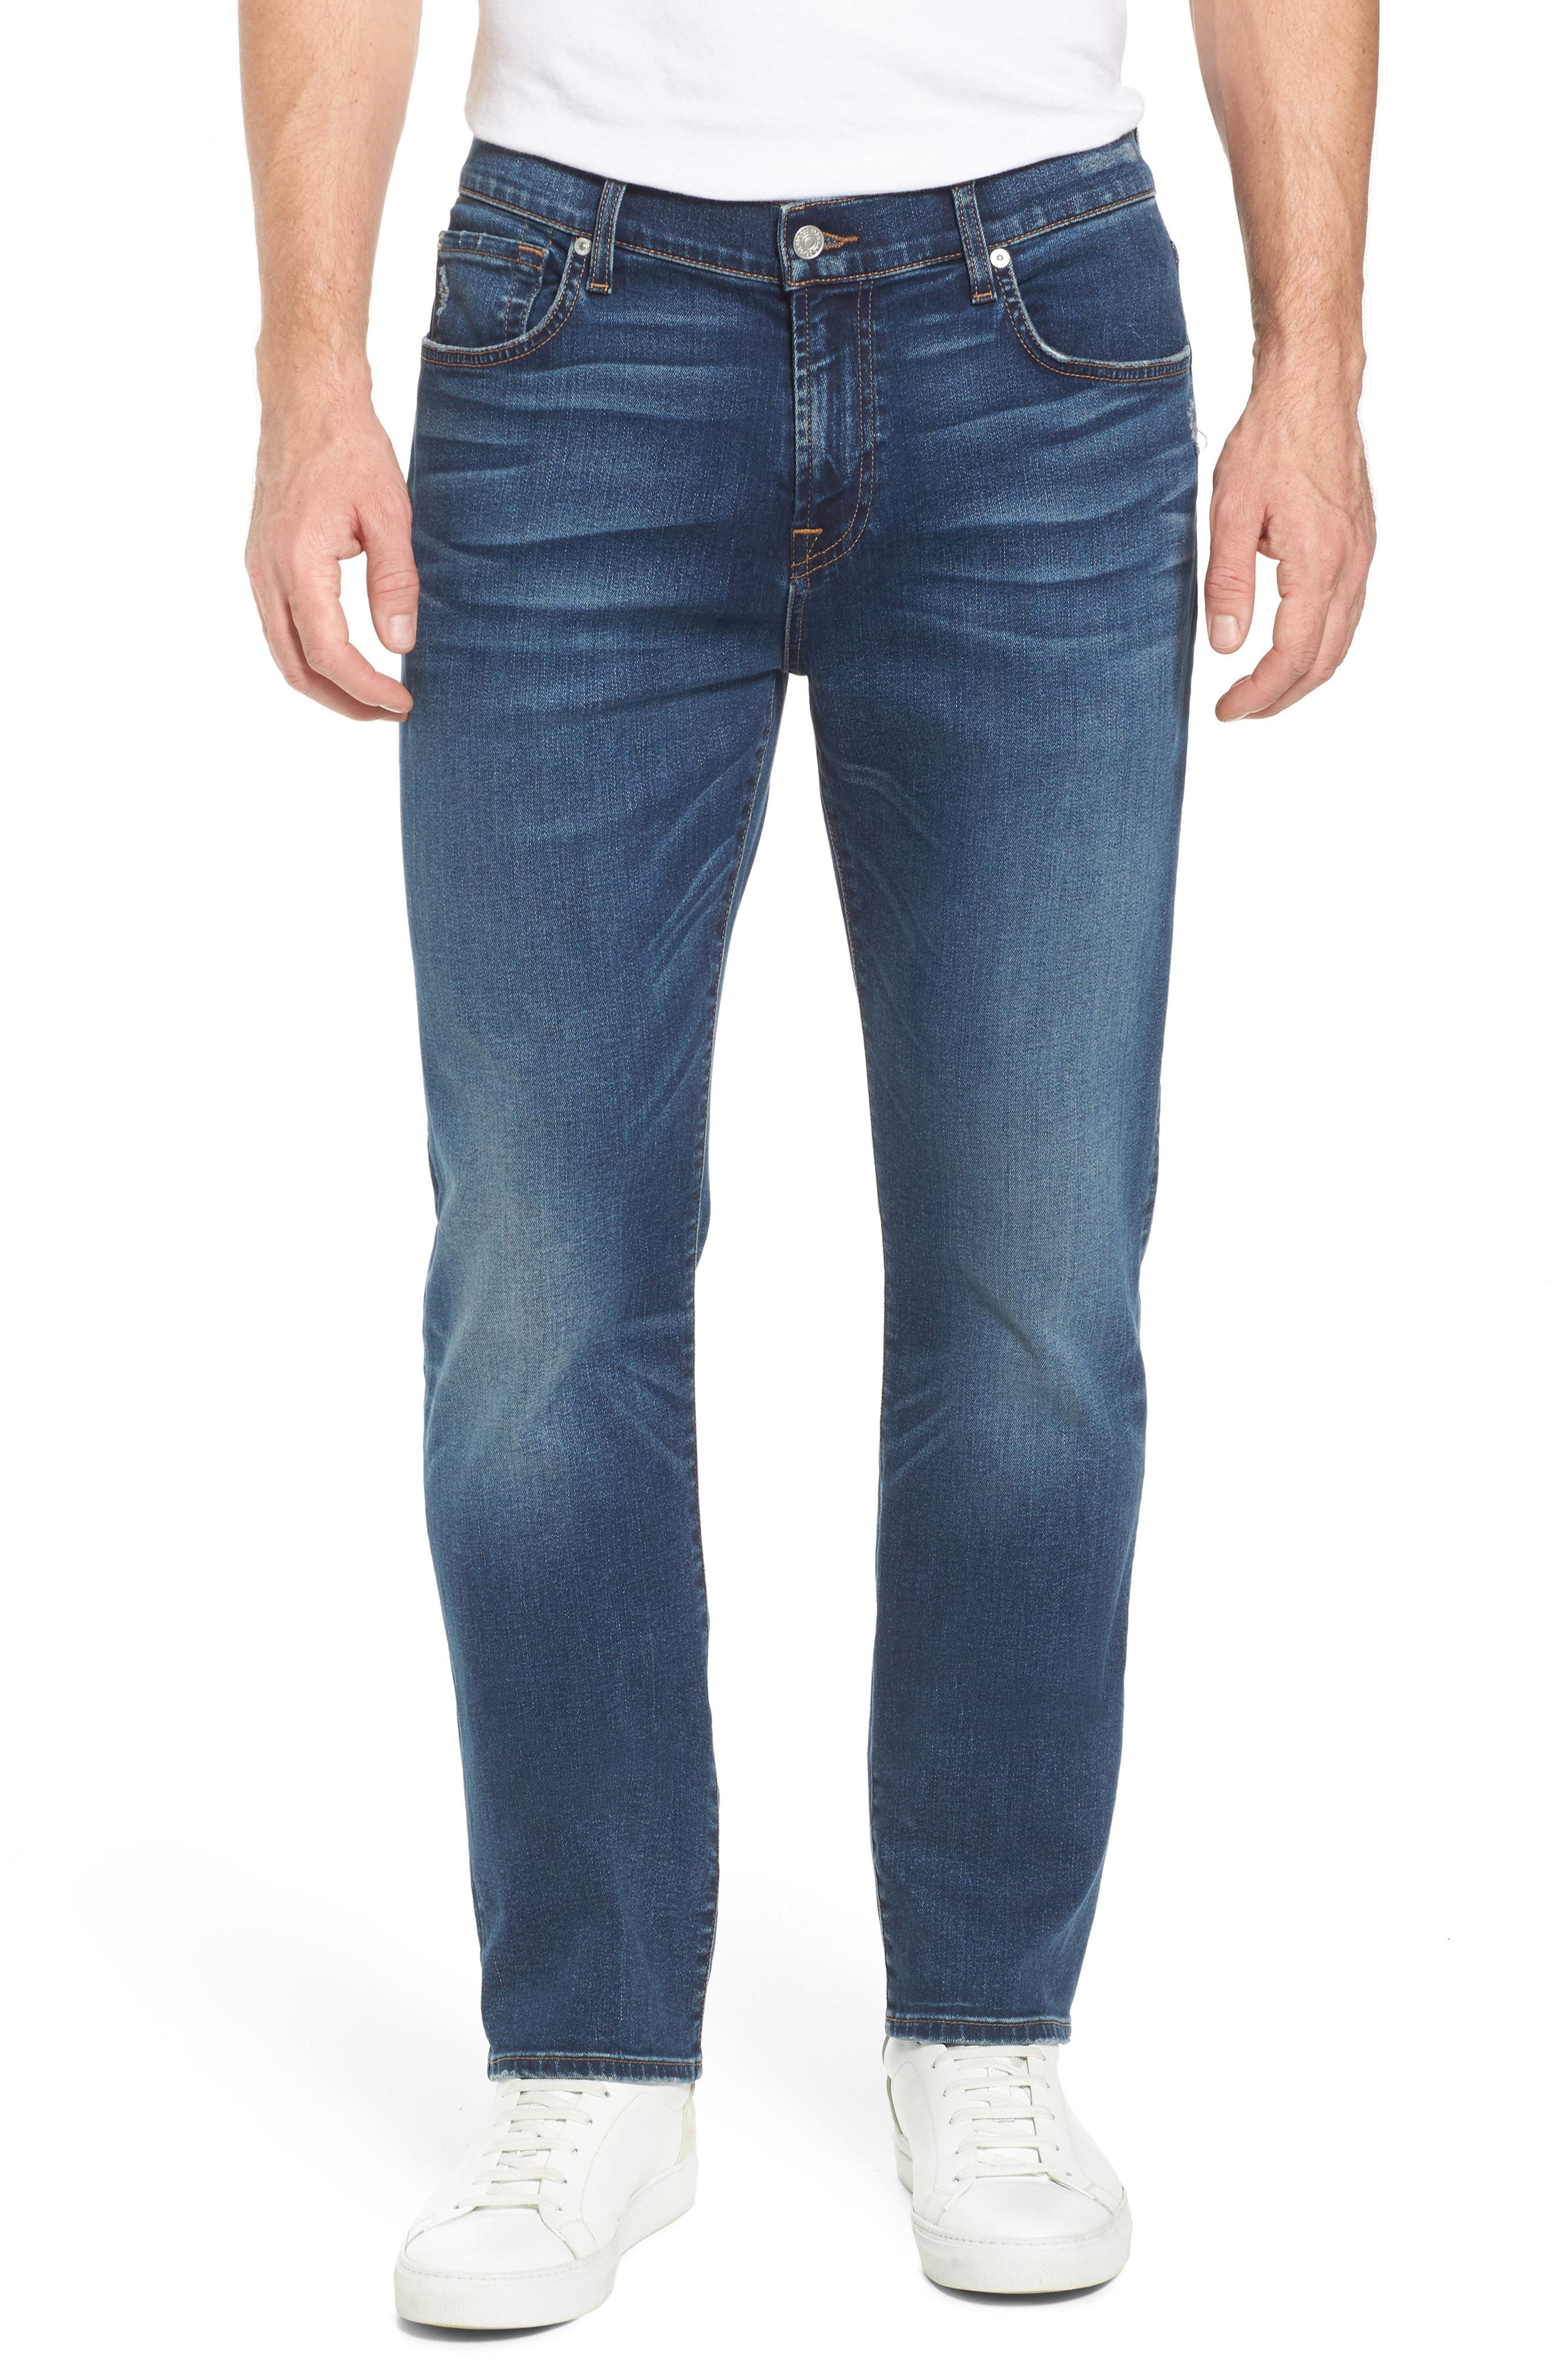 The Straight - Luxe Performance Slim Straight Leg Jeans,                             Main thumbnail 1, color,                             LUXE PERFORMANCE UNION